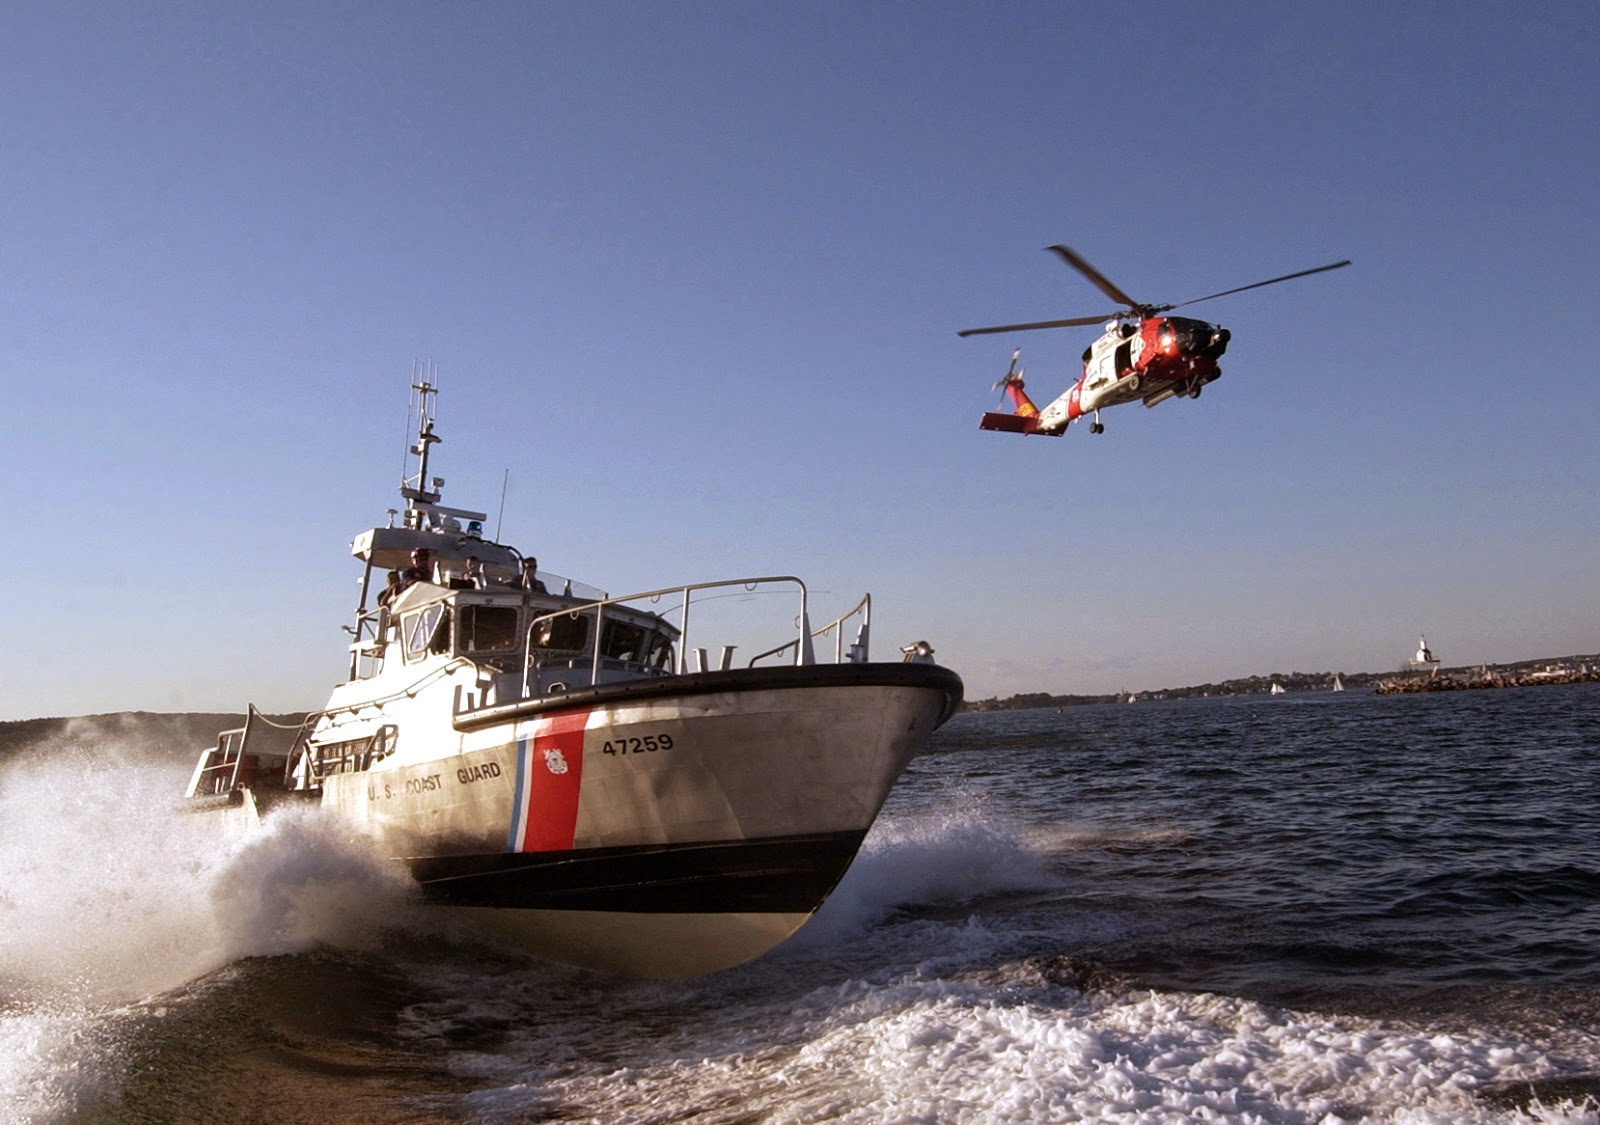 Coast Guard and use of sonar security